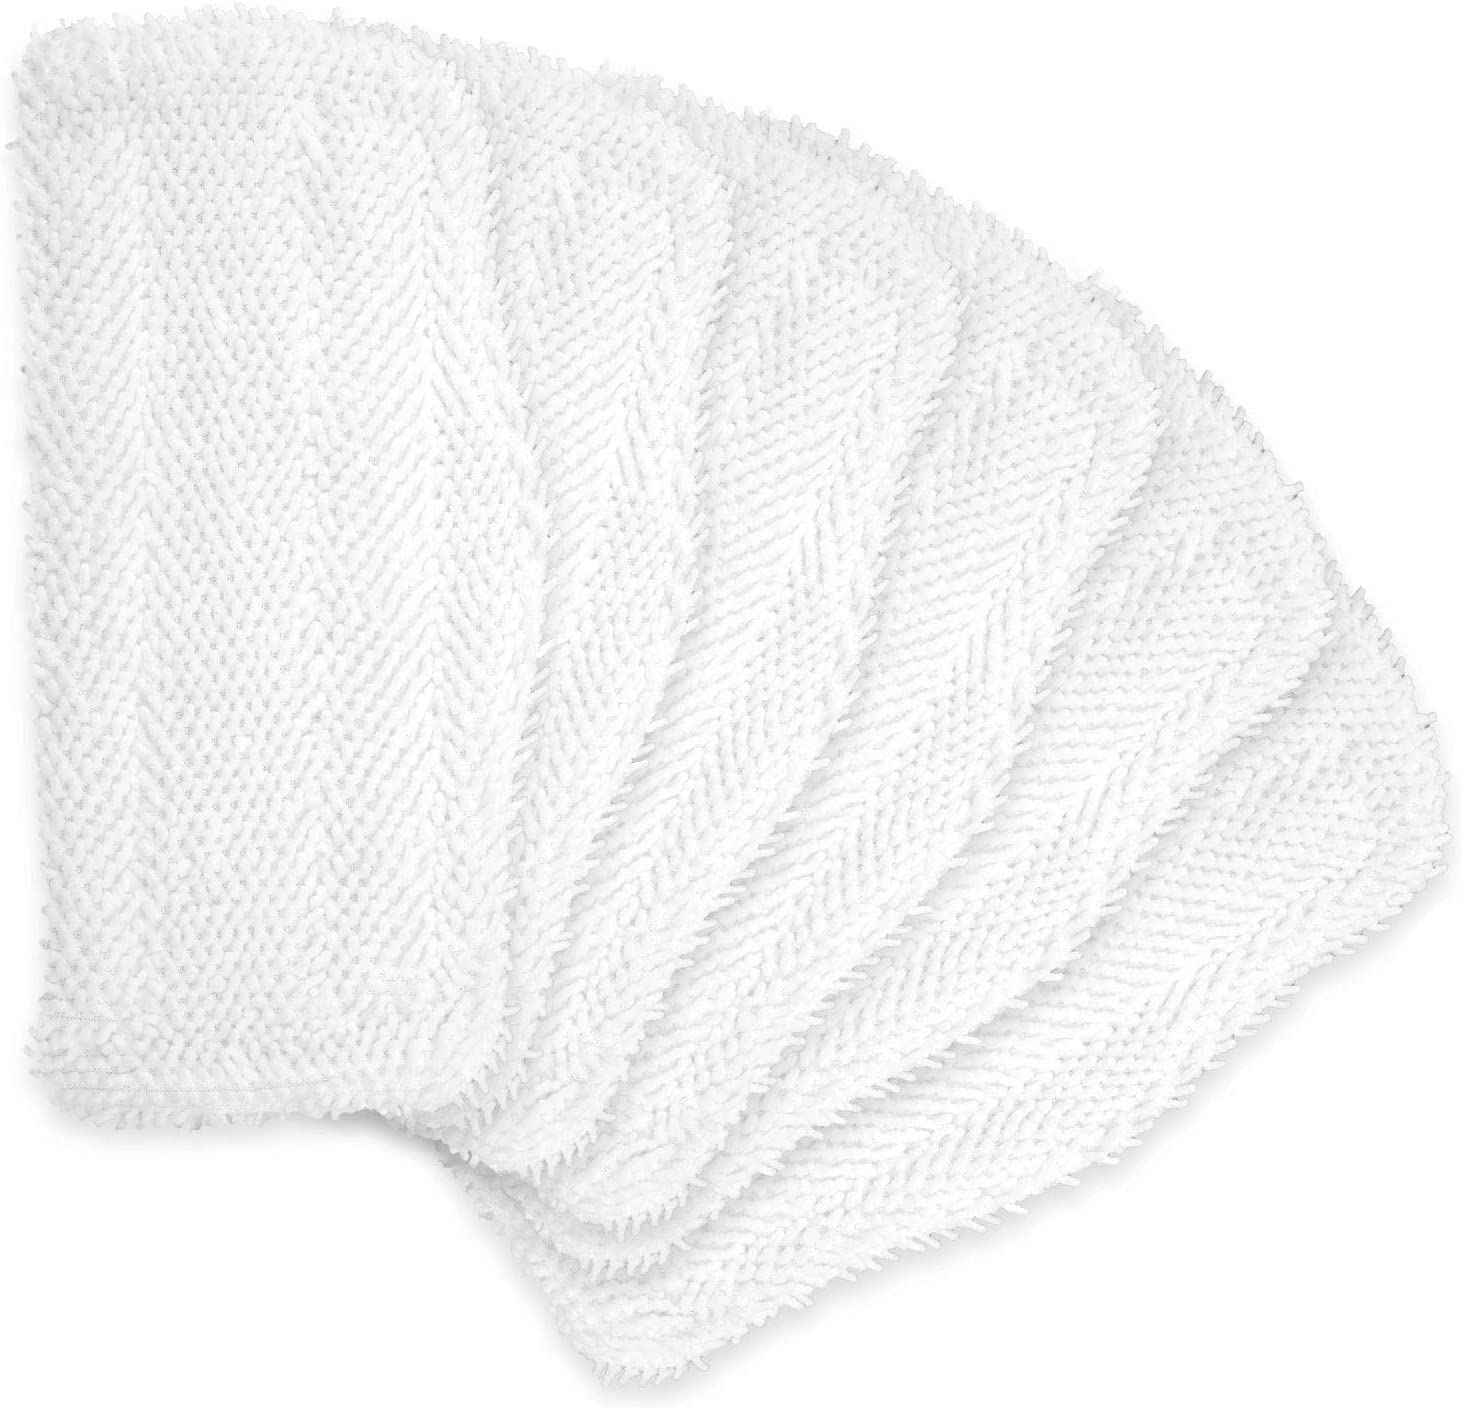 FFsign 6 Pack Replacement Washable Cleaning Pads for Shark Steam & Spray Mop SK410, SK460, SK115, SK140, SK141, SK435CO, S3101, S3102, S3250, S3251, 6 Pcs Washable Microfiber Cleaning Steamer Pads